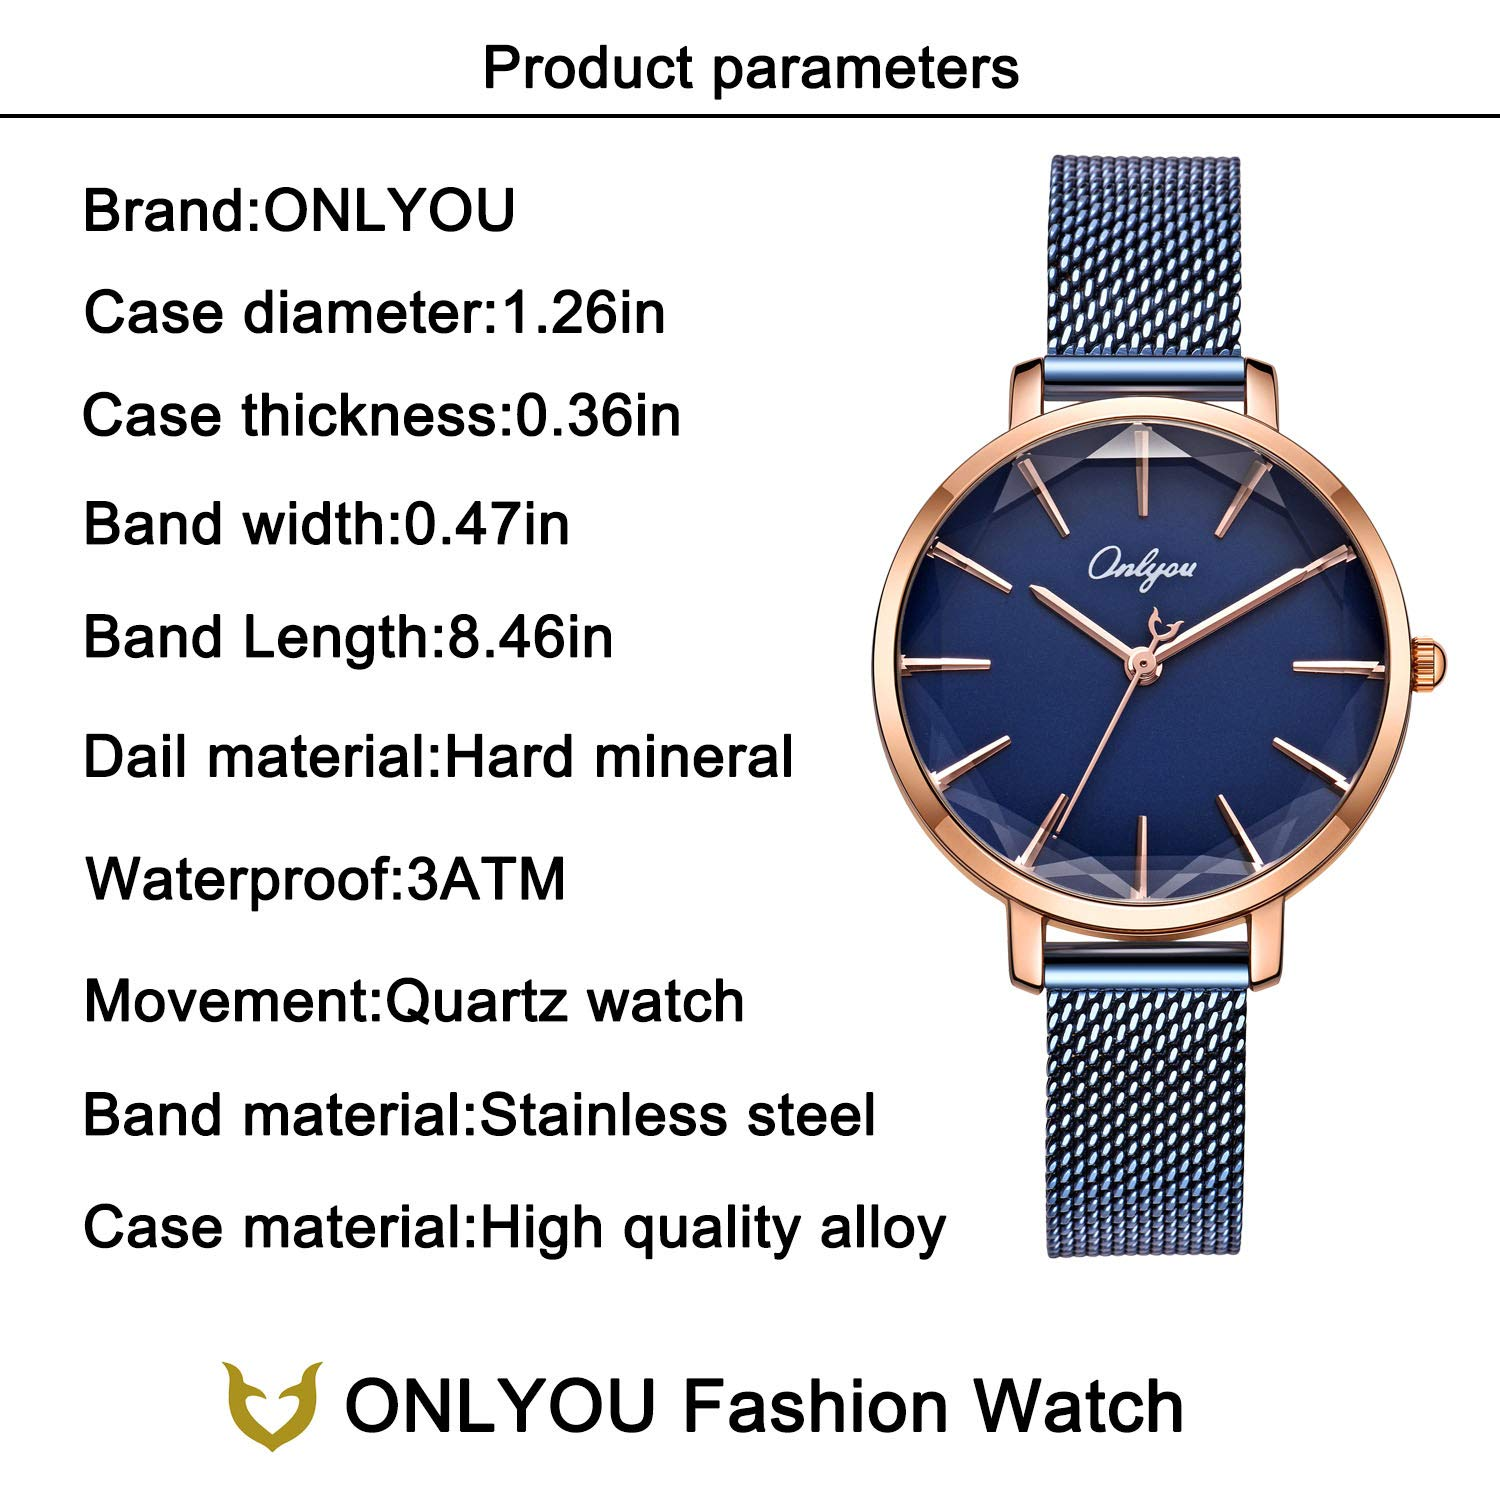 ONLYOU Women's Fashion Watches,Unique Face Design and 30M Waterproof,Analog Quartz Wristwatches with Stainless Steel Mesh Band (Blue) by onlyou (Image #4)